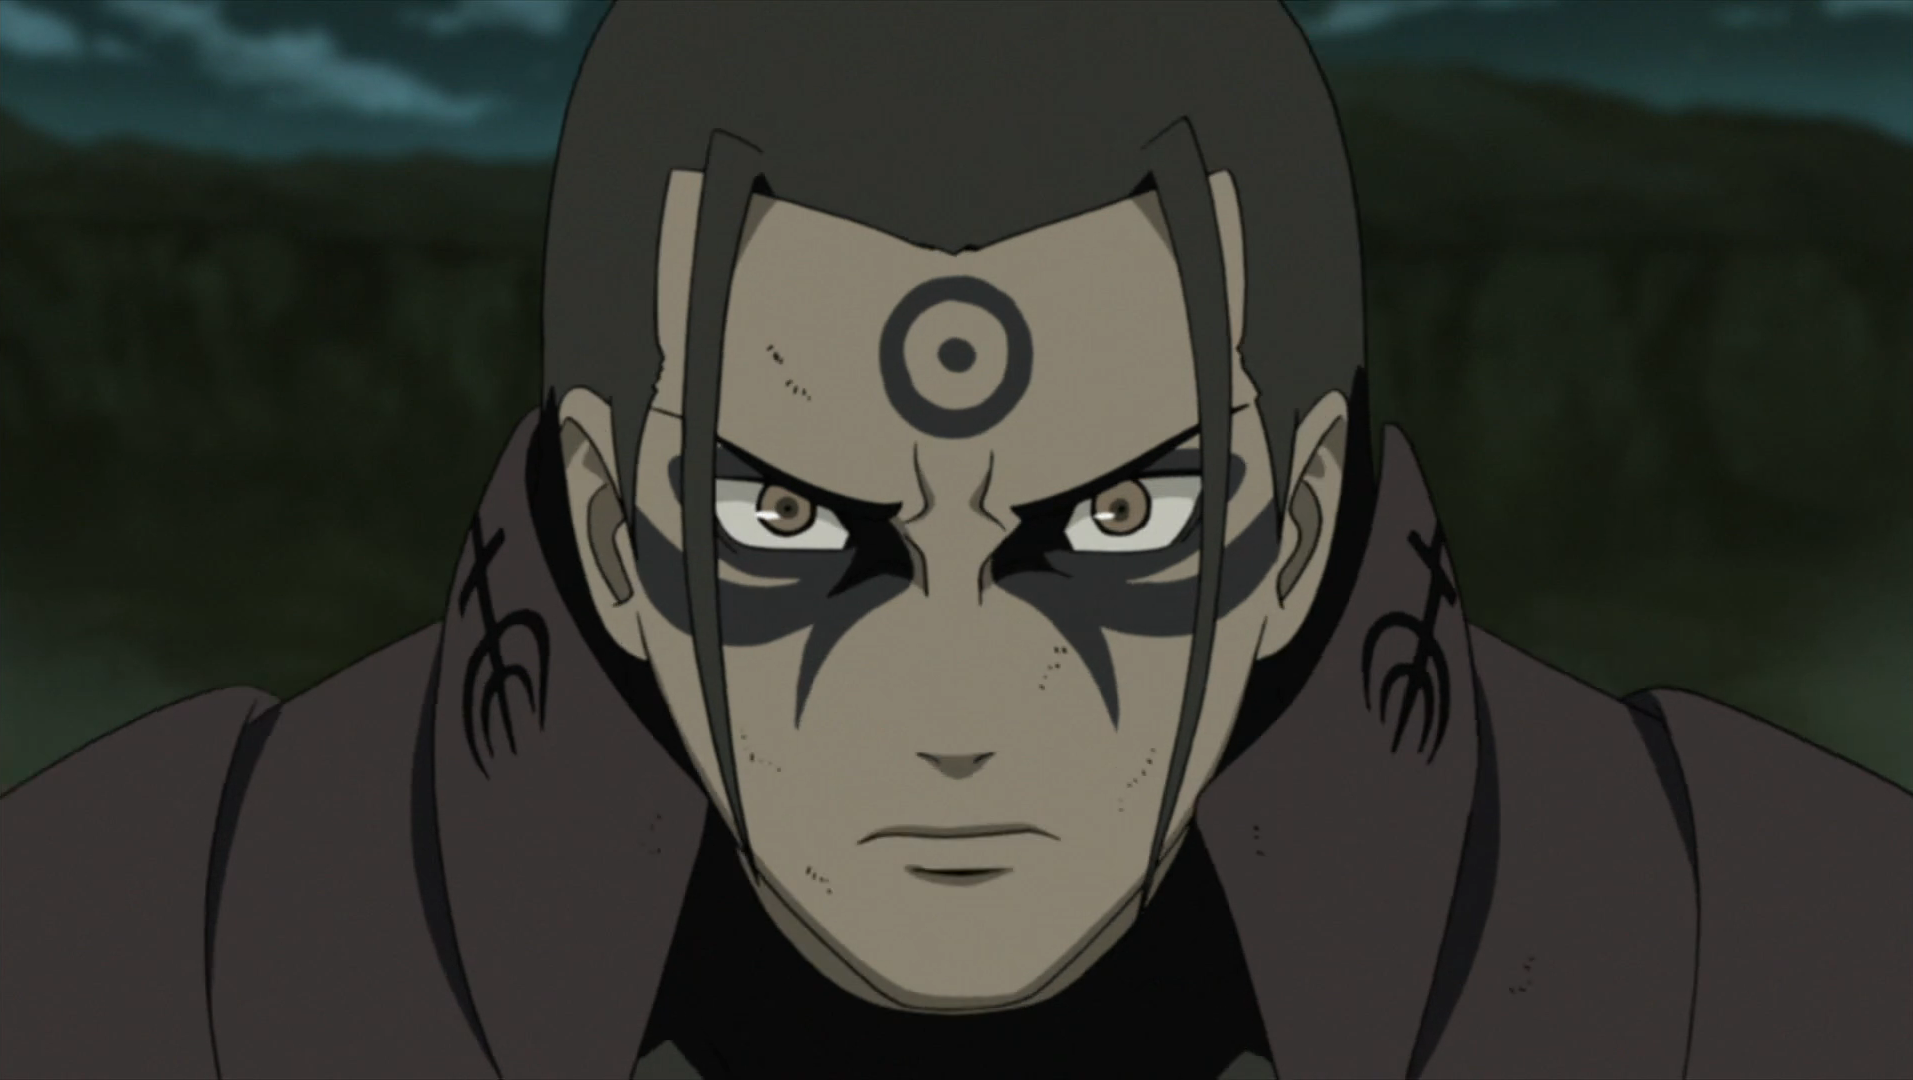 Which clan is the First Hokage (Hashirama)? (The first letter needs to be capital!)